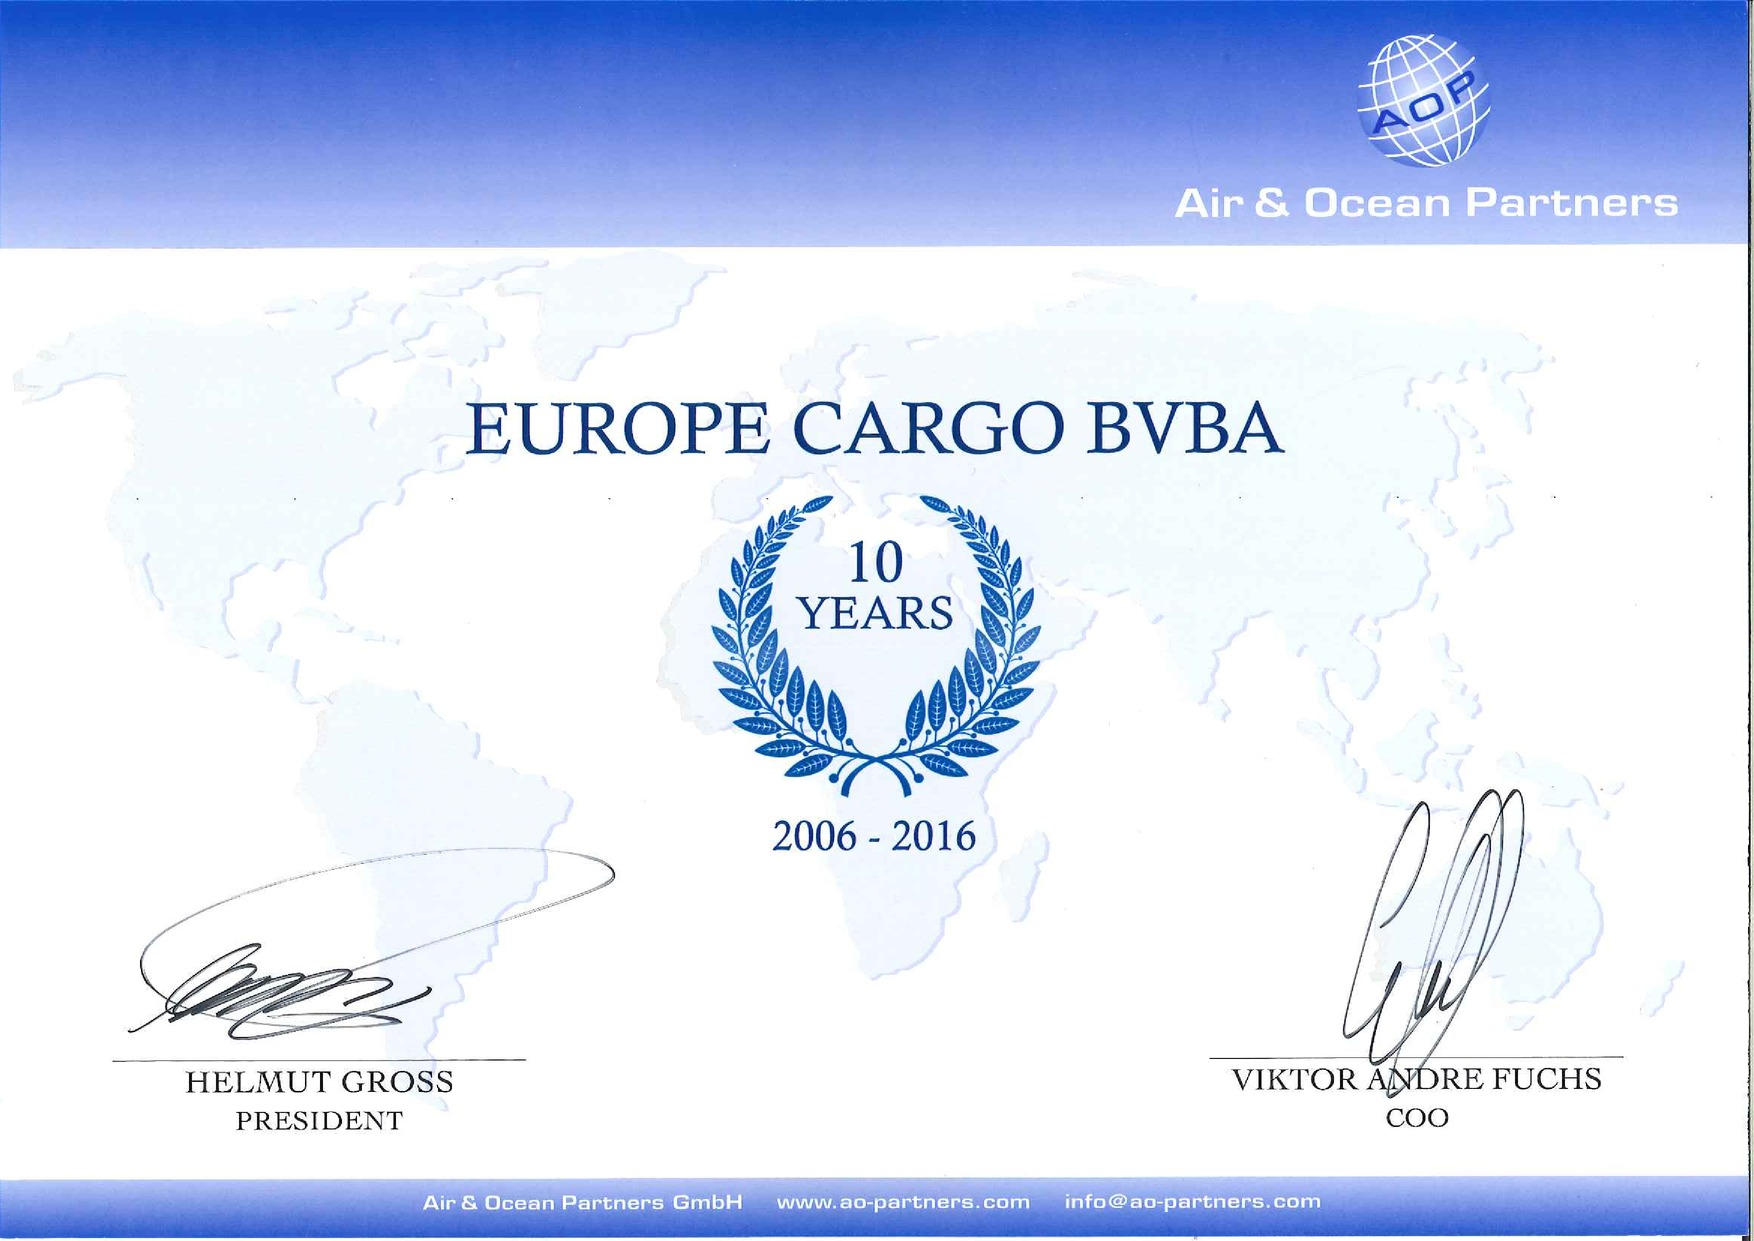 Europe Cargo already 10 Years Member of AOP